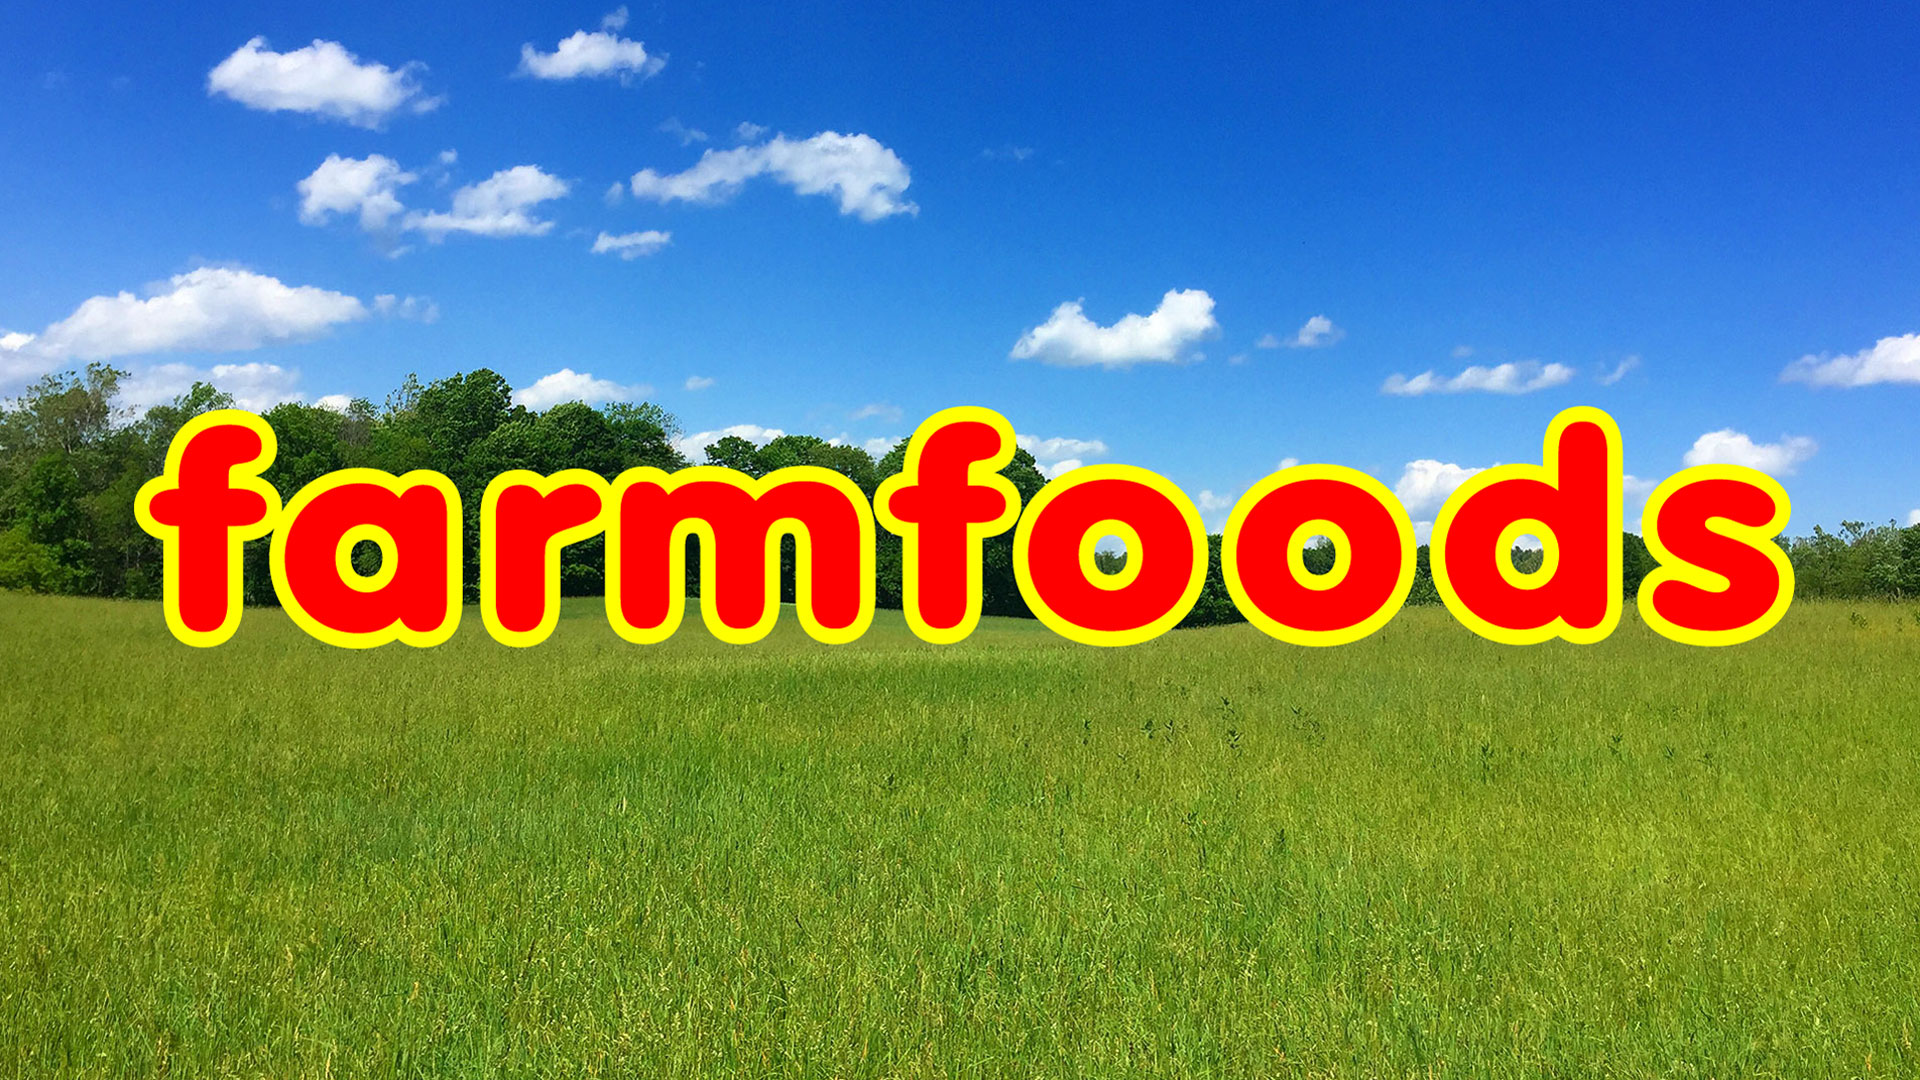 Buy Easy at Farmfoods